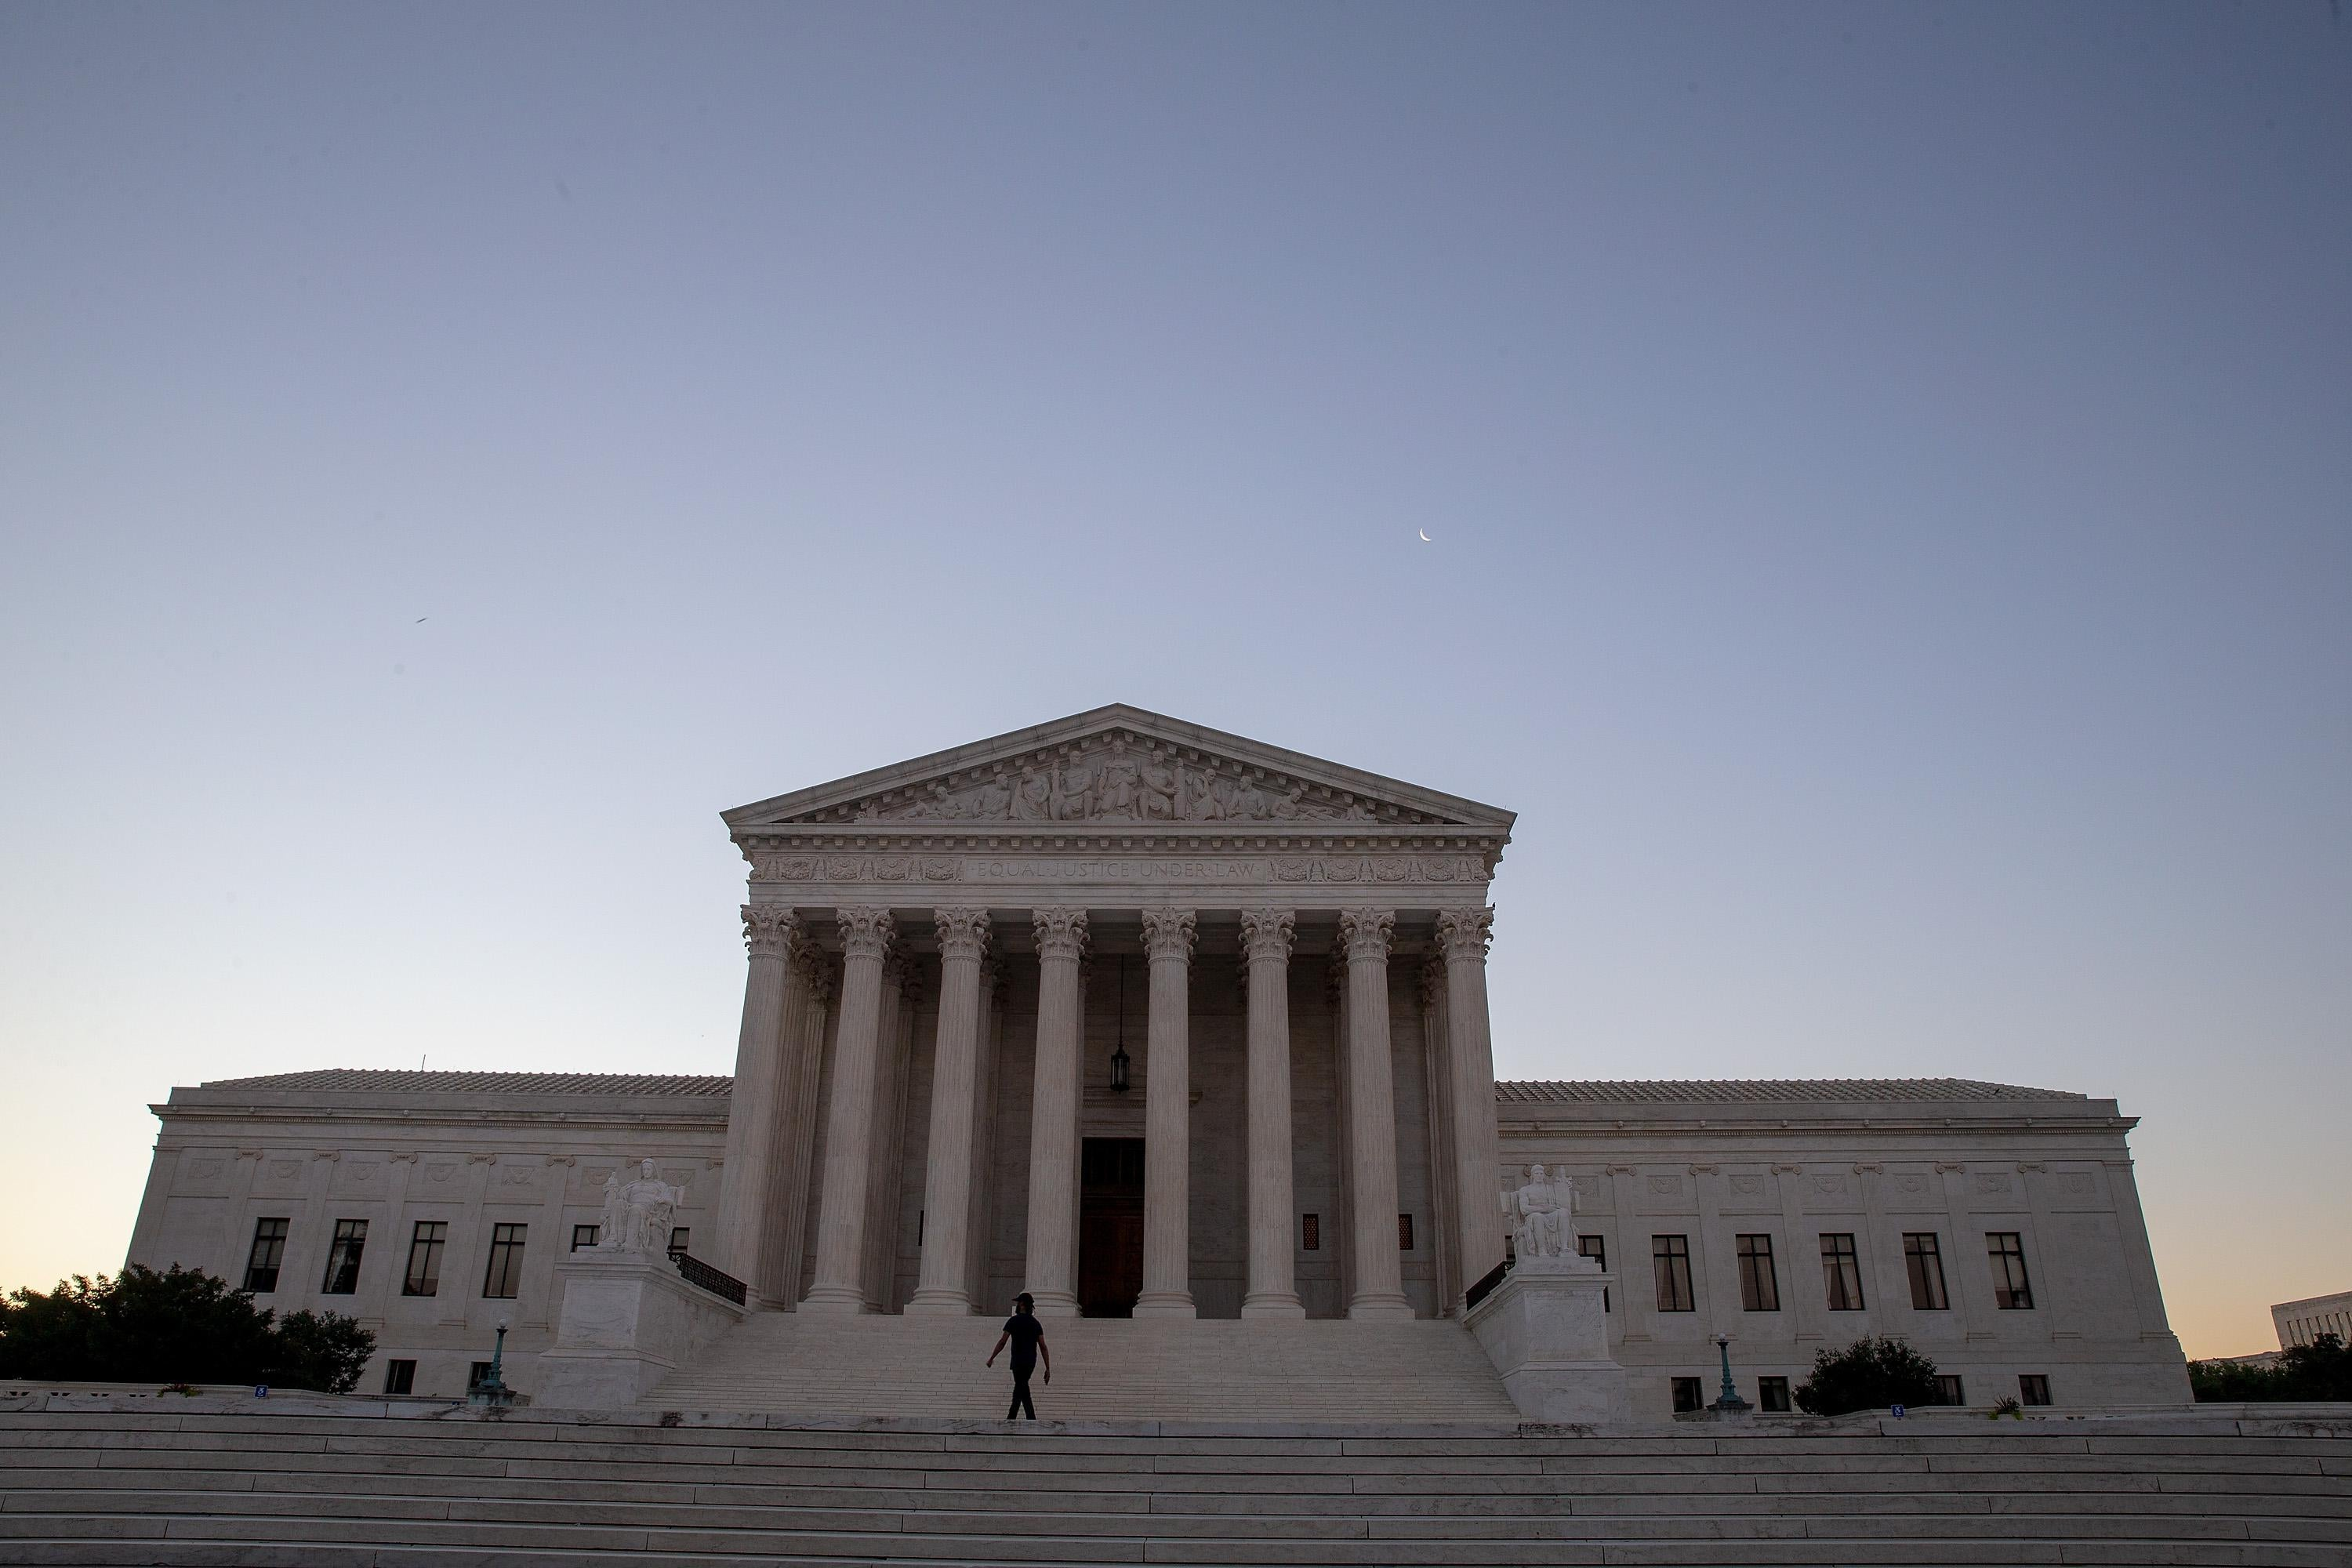 The Supreme Court building at sunrise.